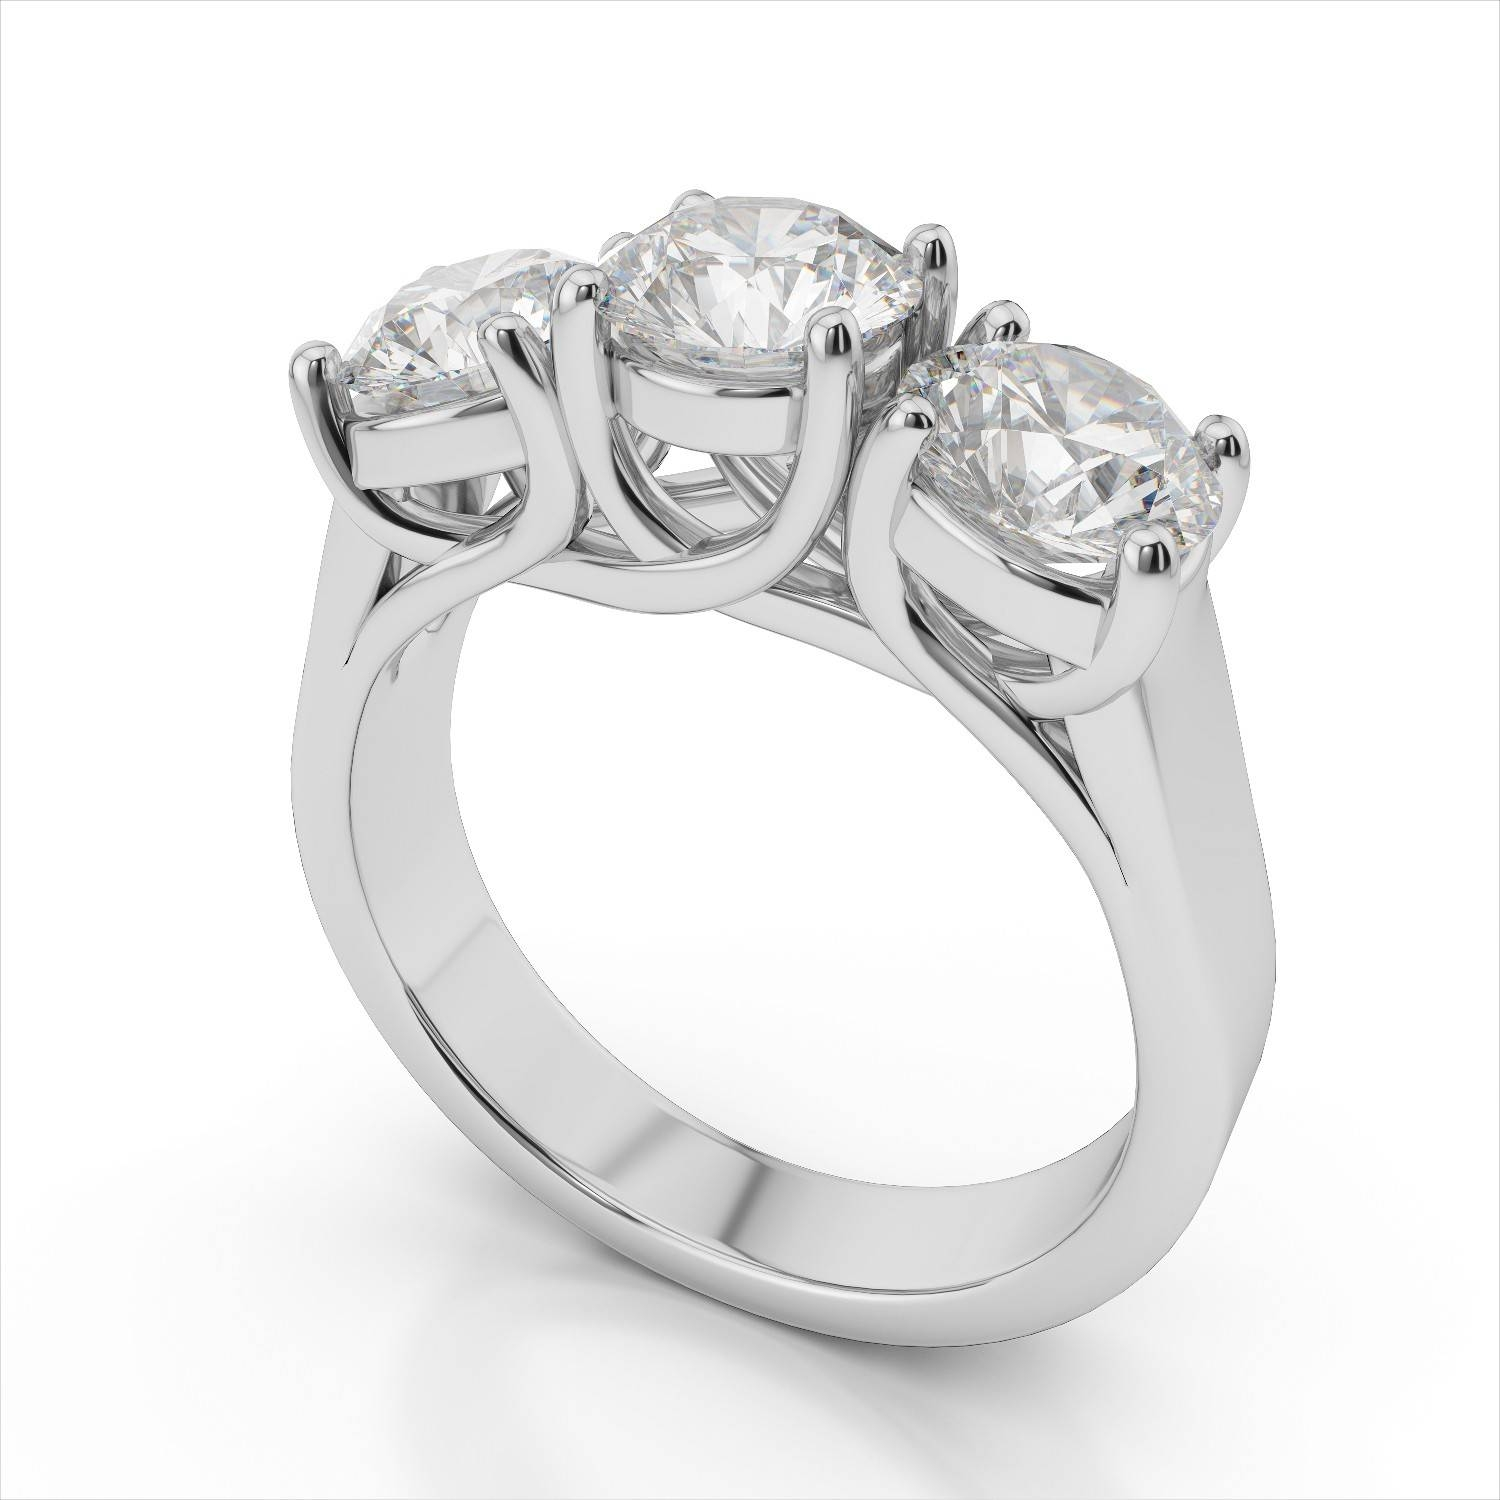 Rings : 3 Stone Diamond Ring Settings Round Cut Engagement Rings Intended For Latest 3 Stone Anniversary Rings Settings (View 9 of 25)